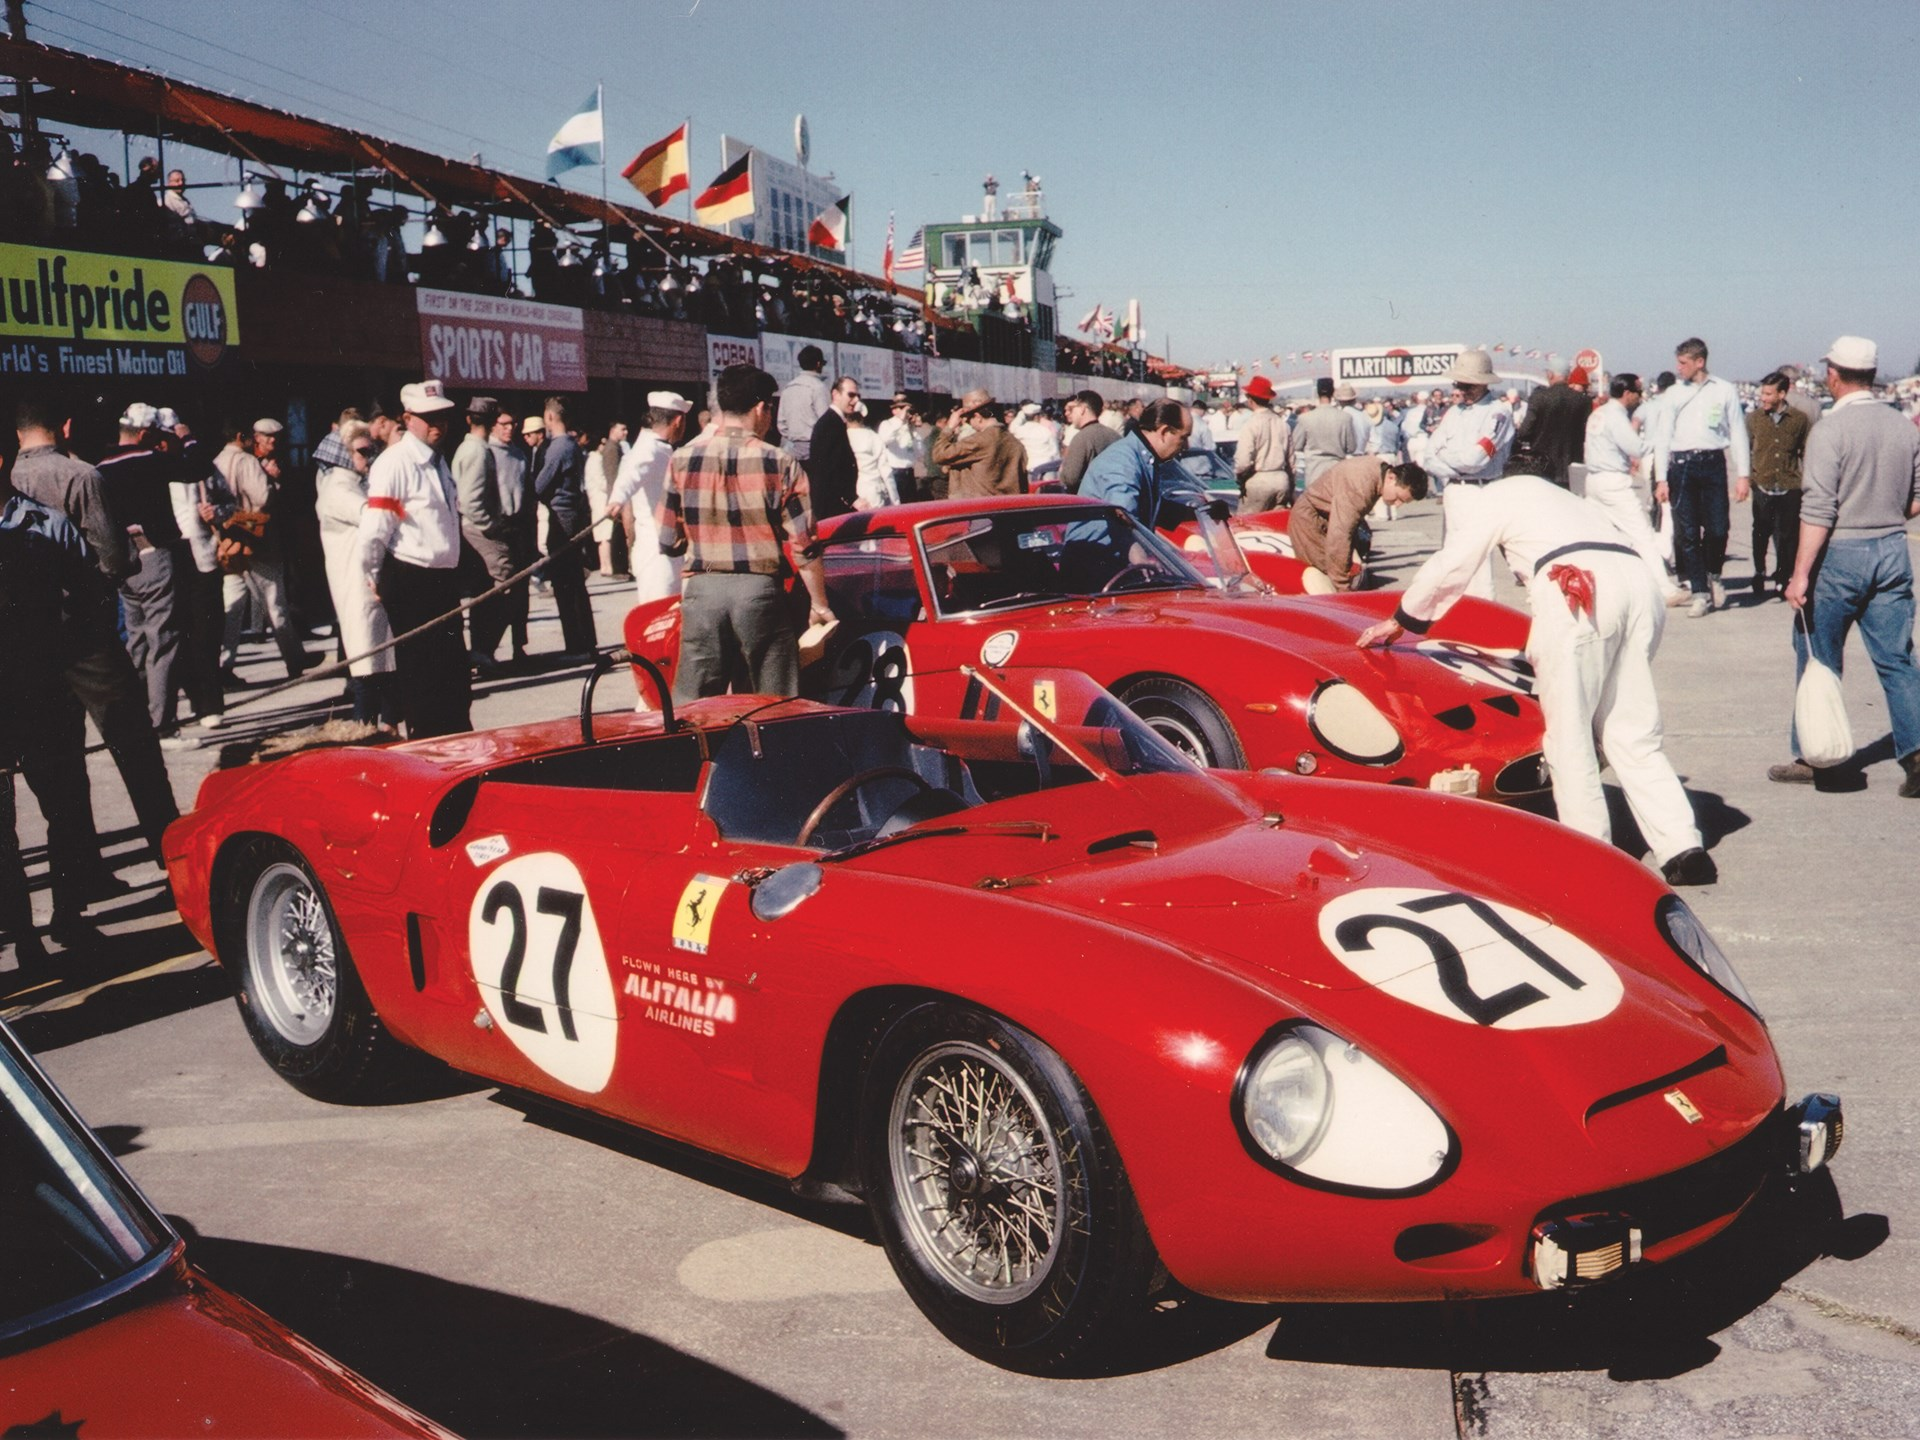 Chassis no. 0798 awaiting the start of the 1963 12 Hours of Sebring.